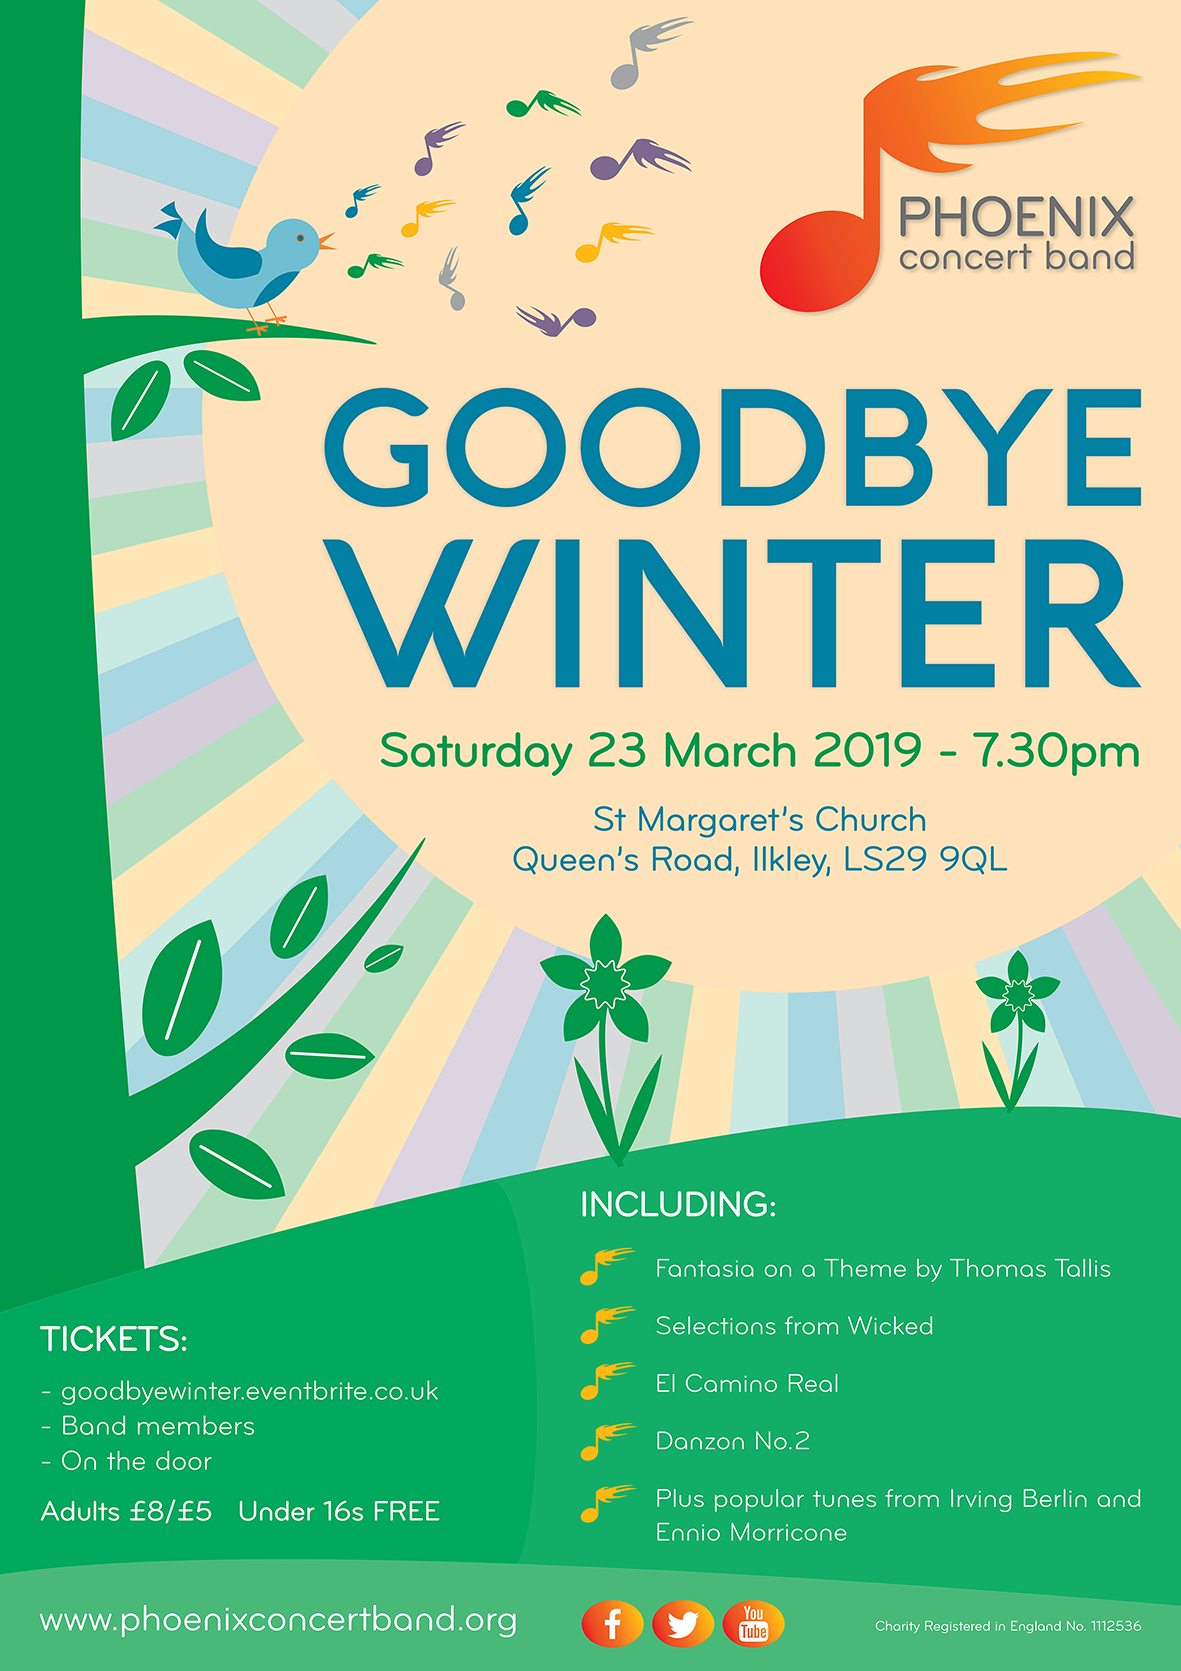 Goodbye Winter concert poster image